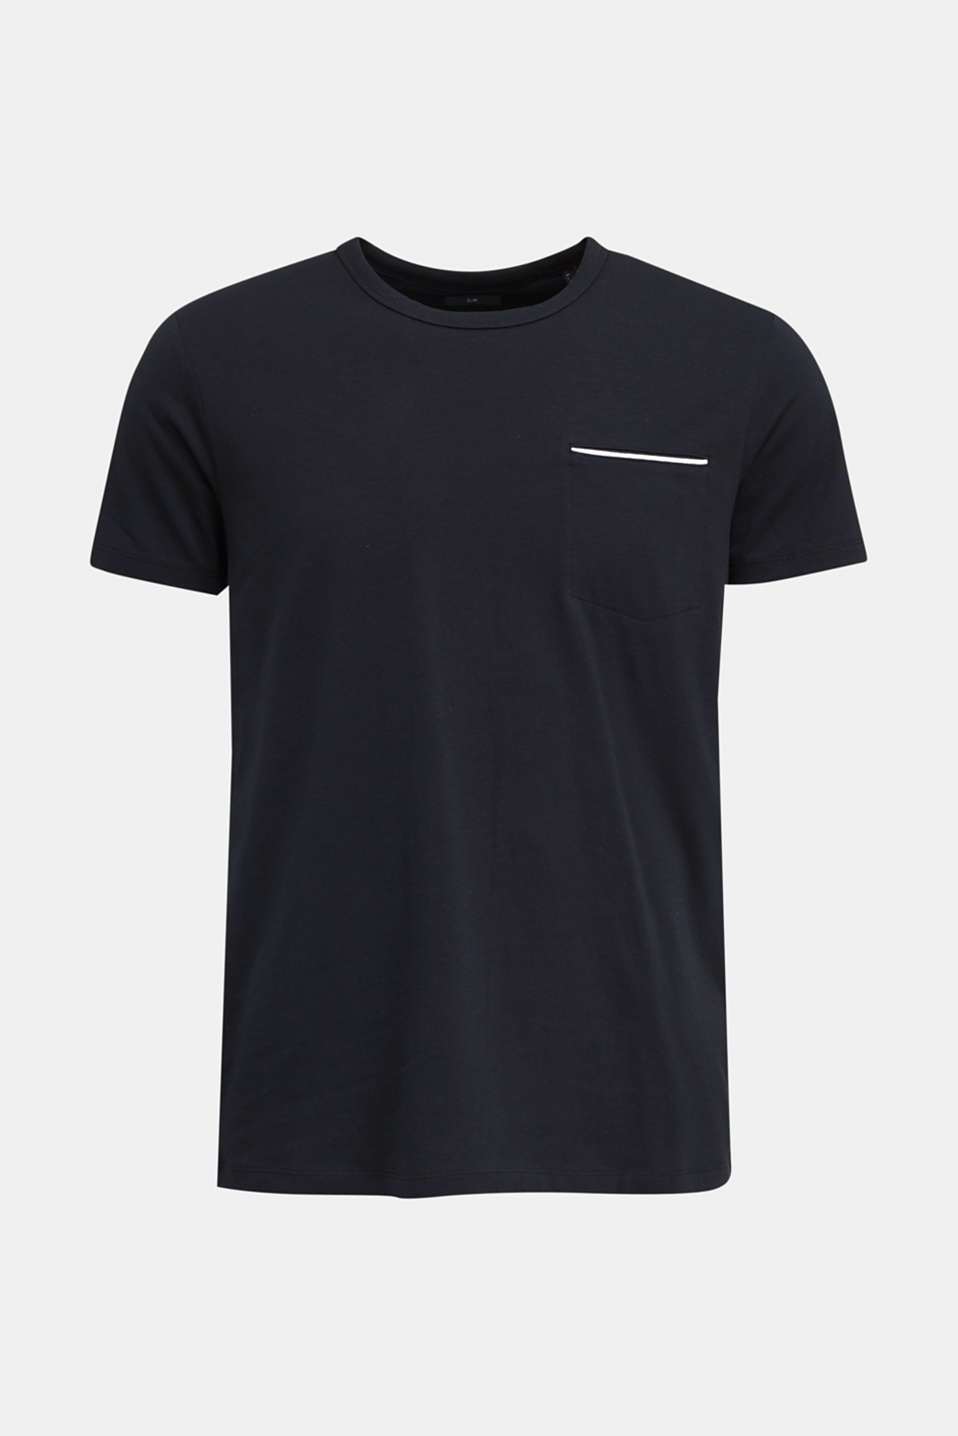 Jersey T-shirt with a pocket and COOLMAX®, BLACK, detail image number 5